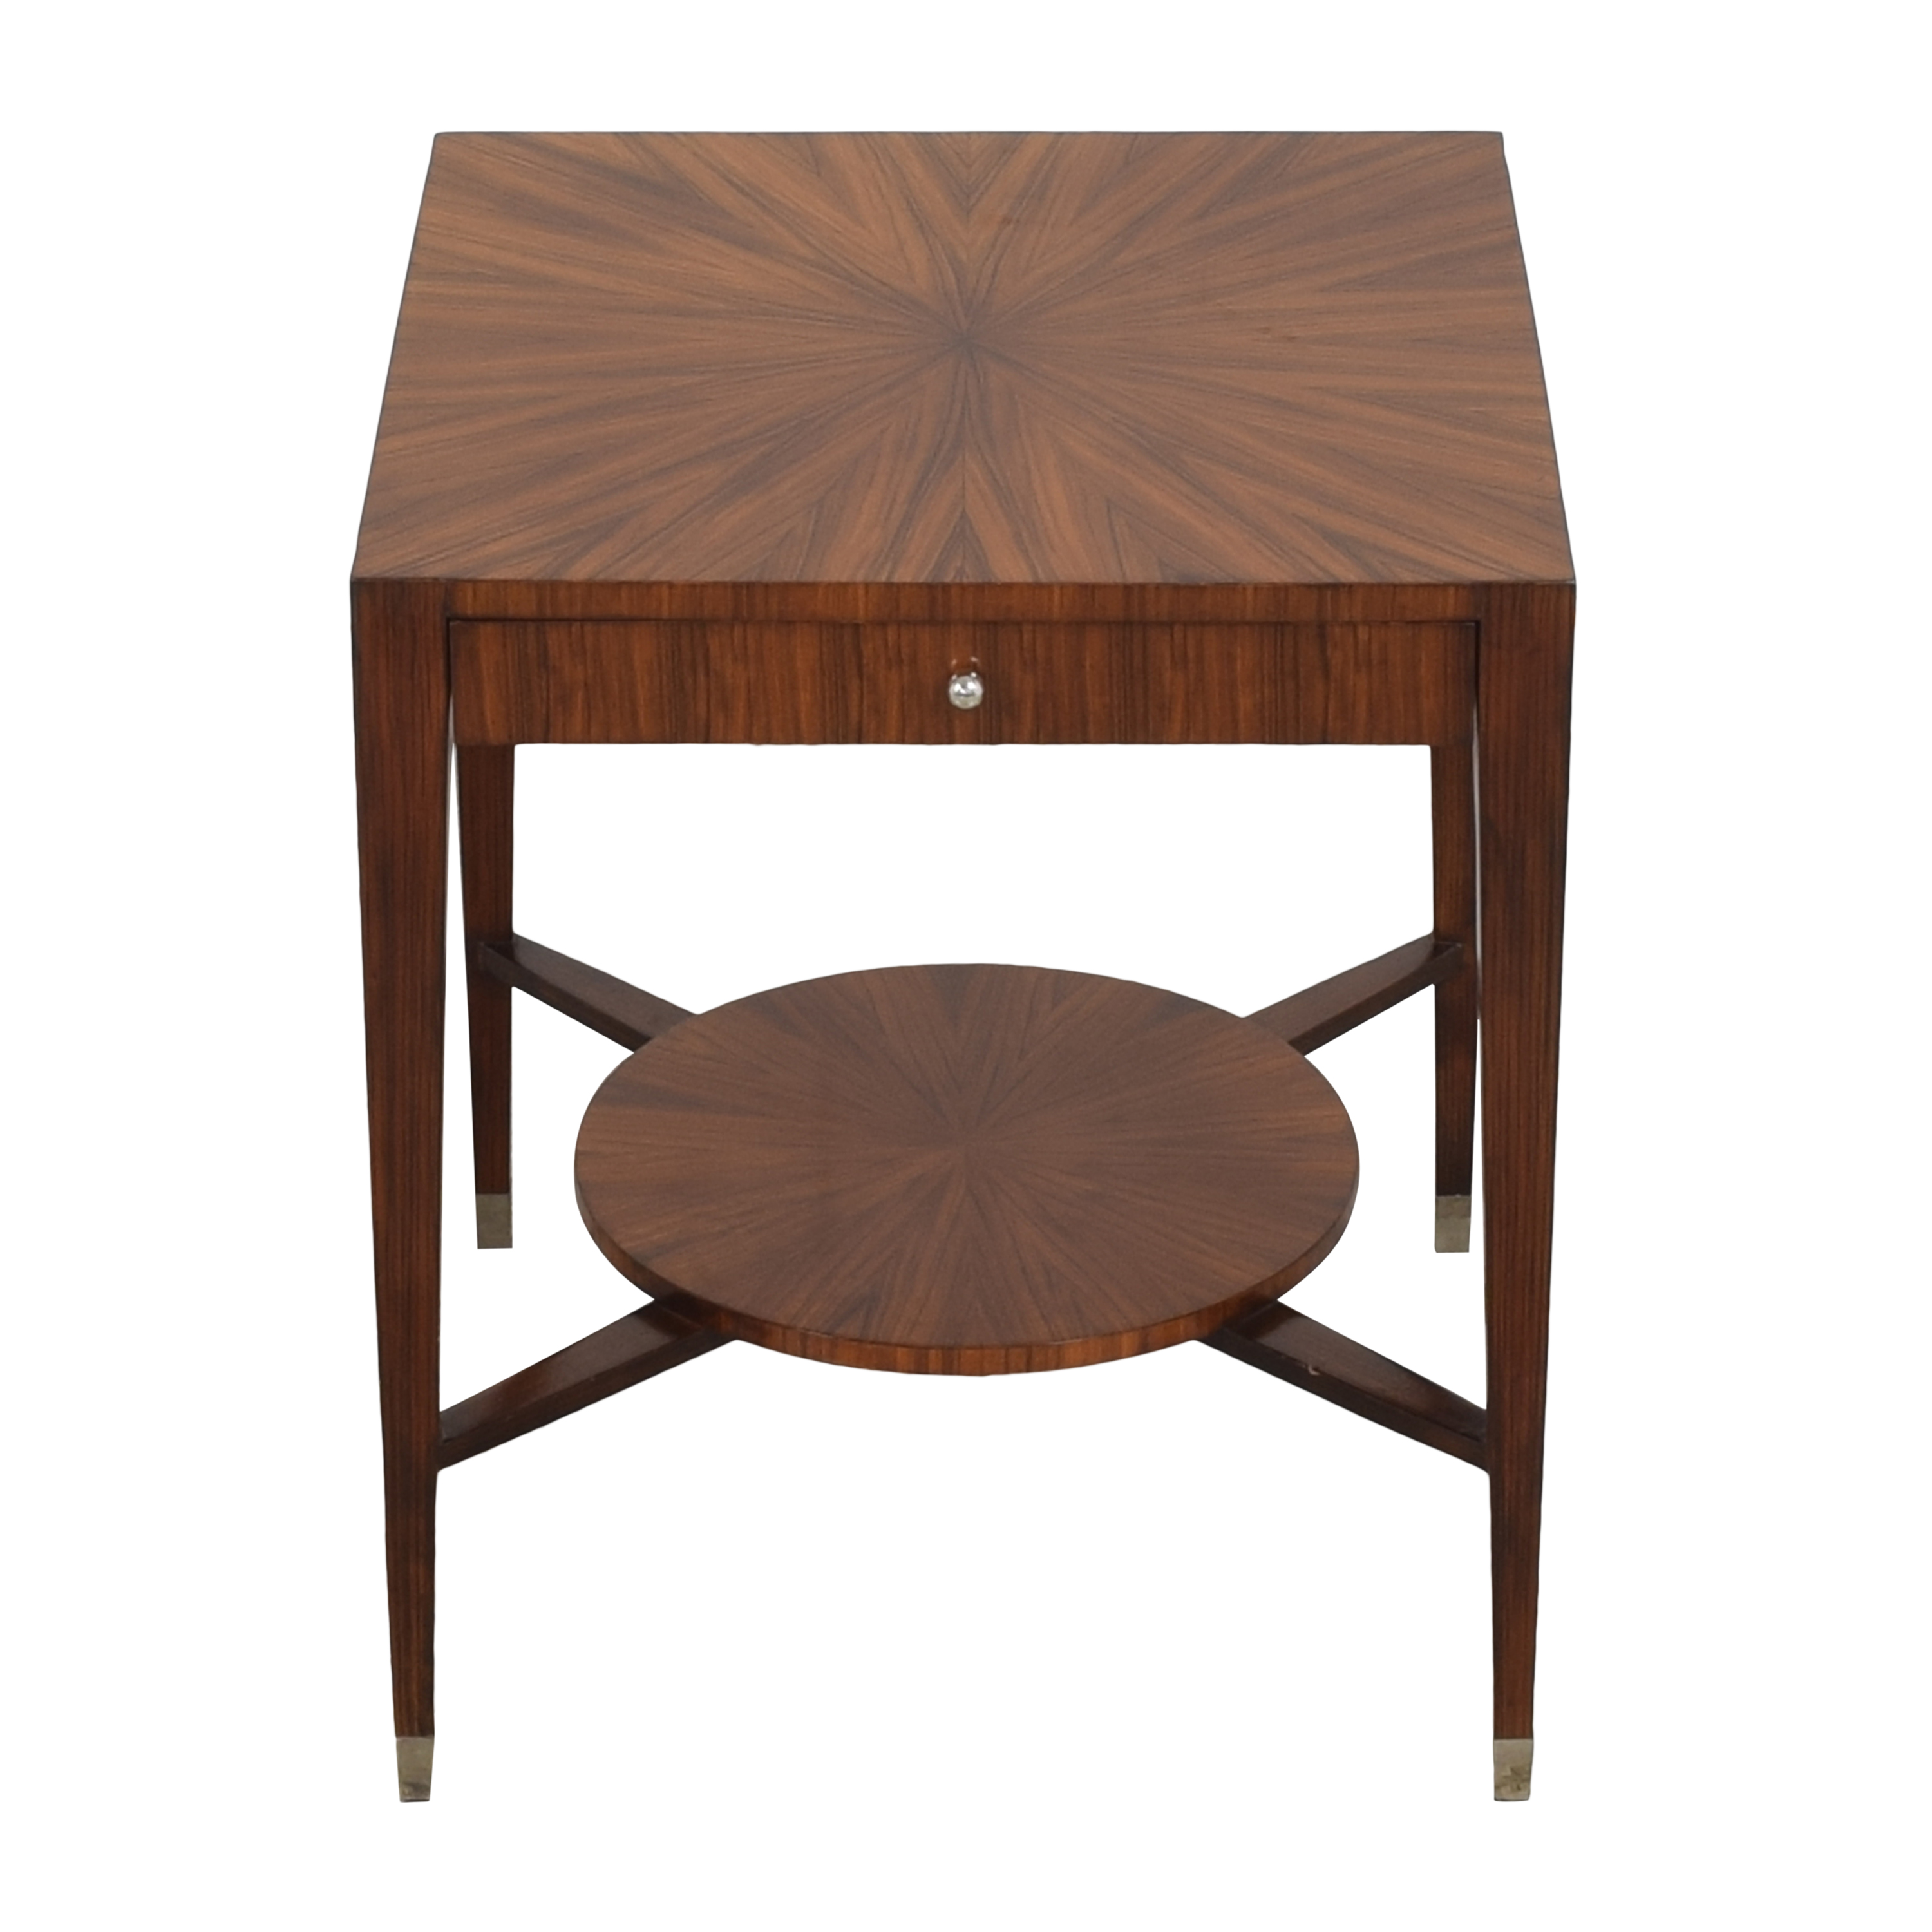 Scarborough House Scarborough House Side Table second hand